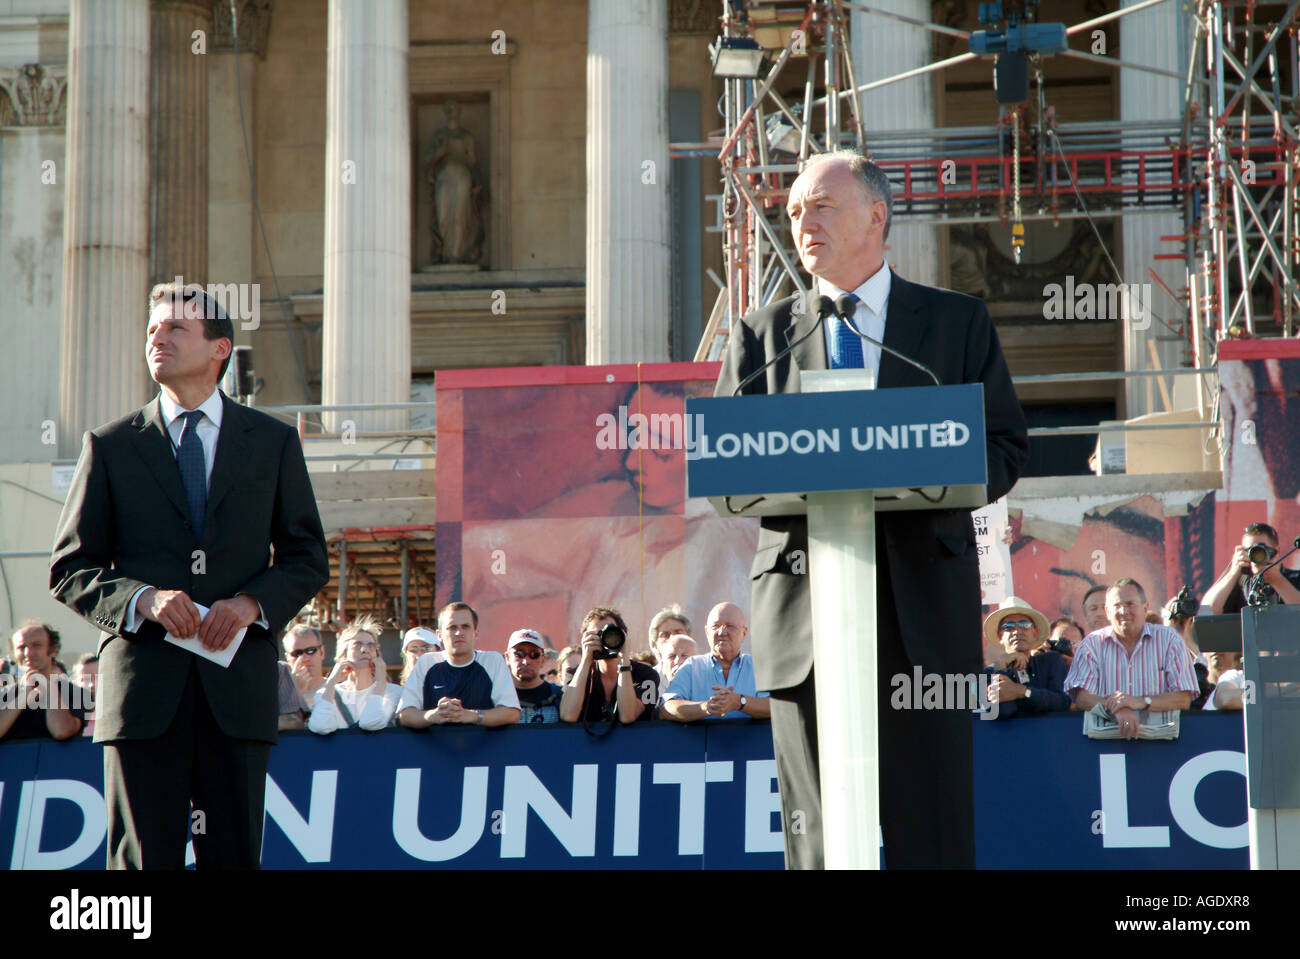 KEN LIVINGSTONE AND SIR SEBASTIAN COLE IN LONDON UNITED RALLY 2006 - Stock Image